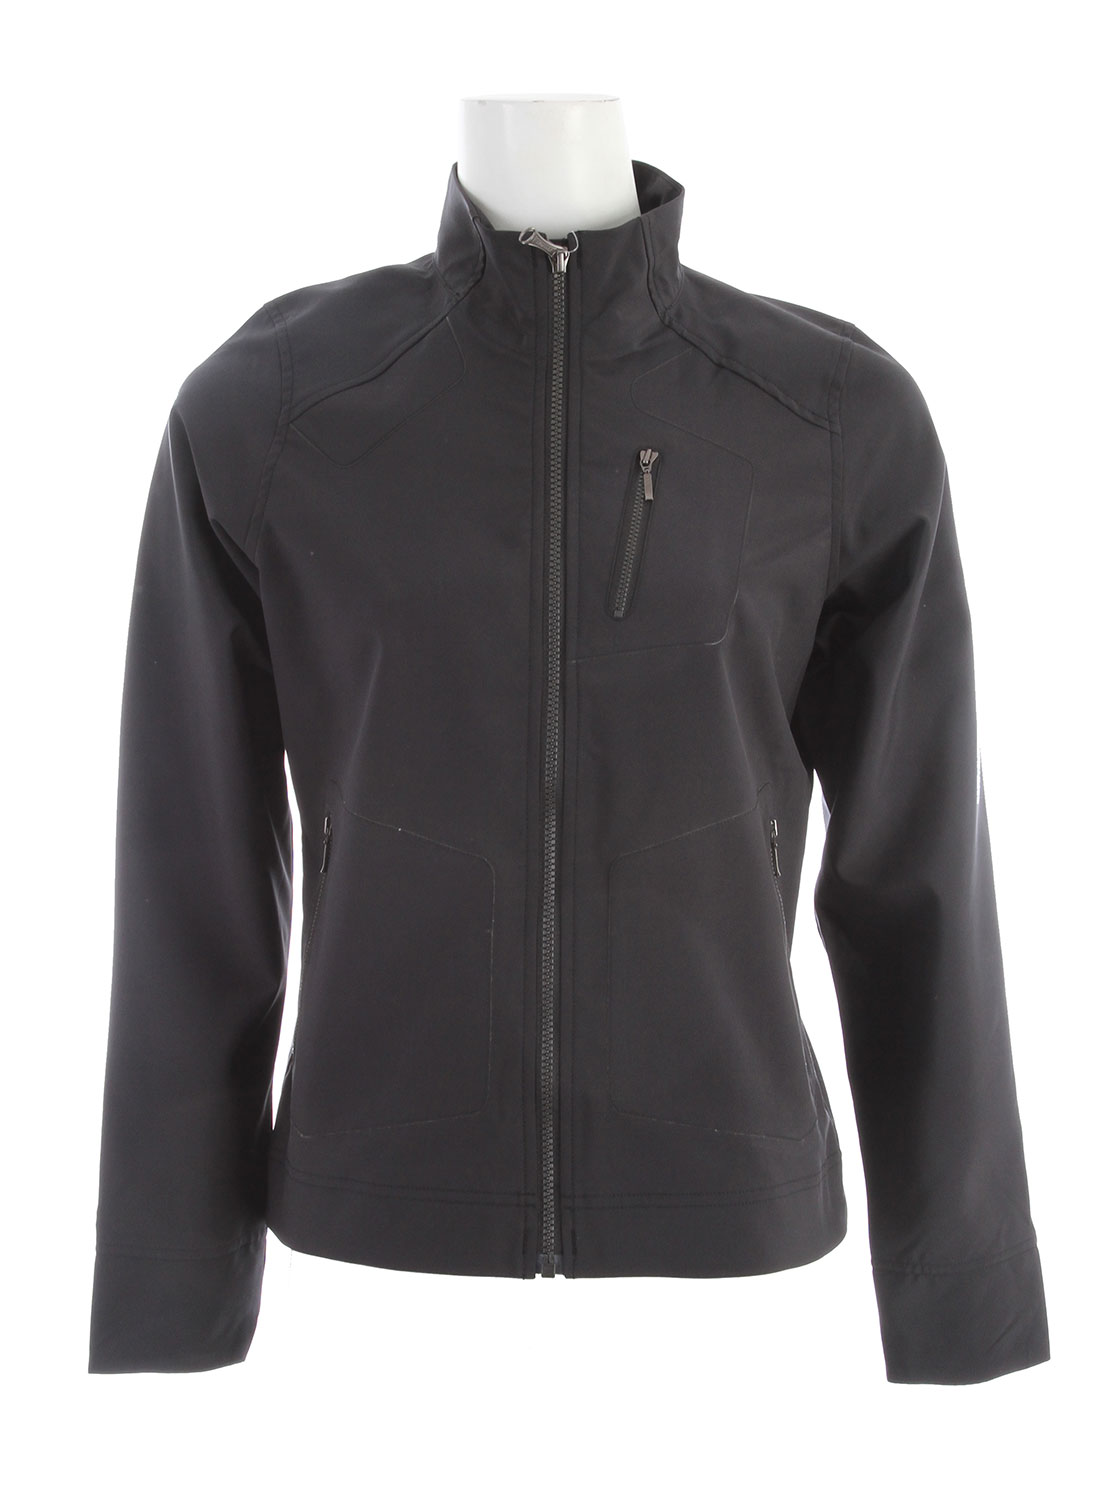 Marmot Levity Jacket Black - $80.95